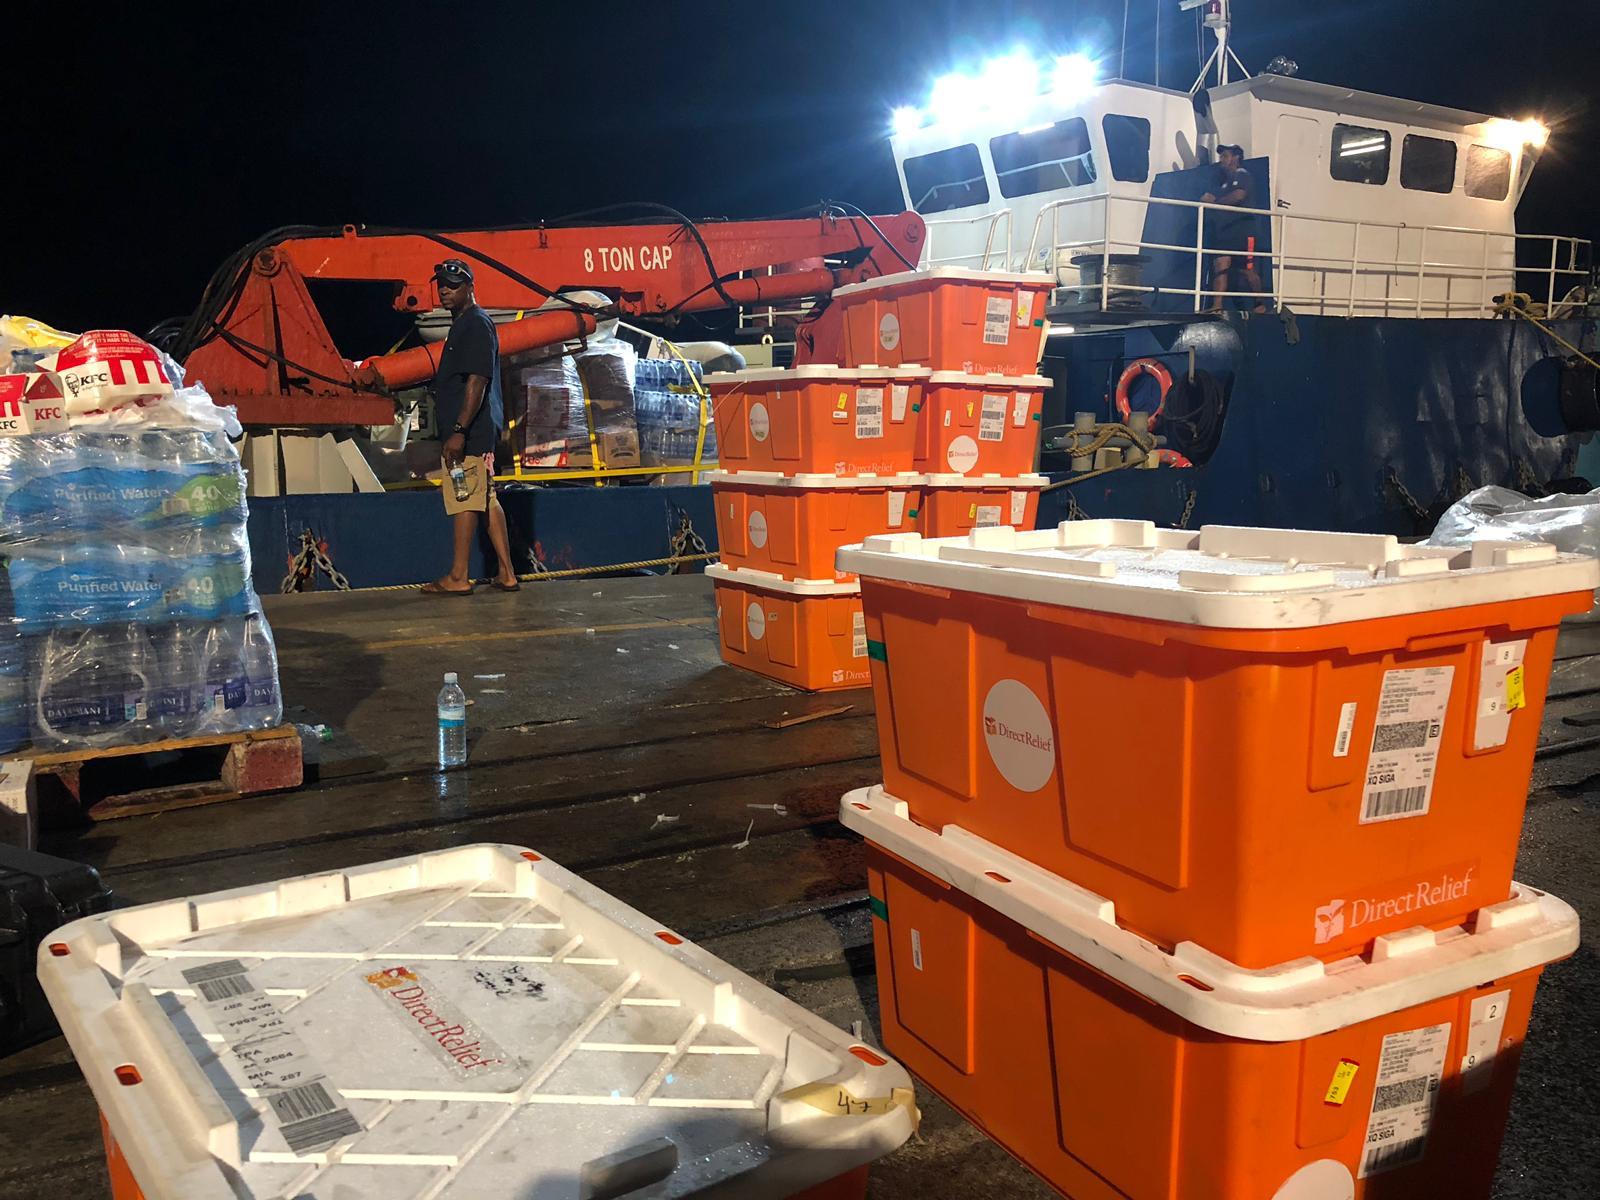 Caches of emergency medicines and medical supplies are prepped for transport from Nassau to be used by medical teams treating patients on the Abaco Islands. (Luis David Rodriguez/Direct Relief)